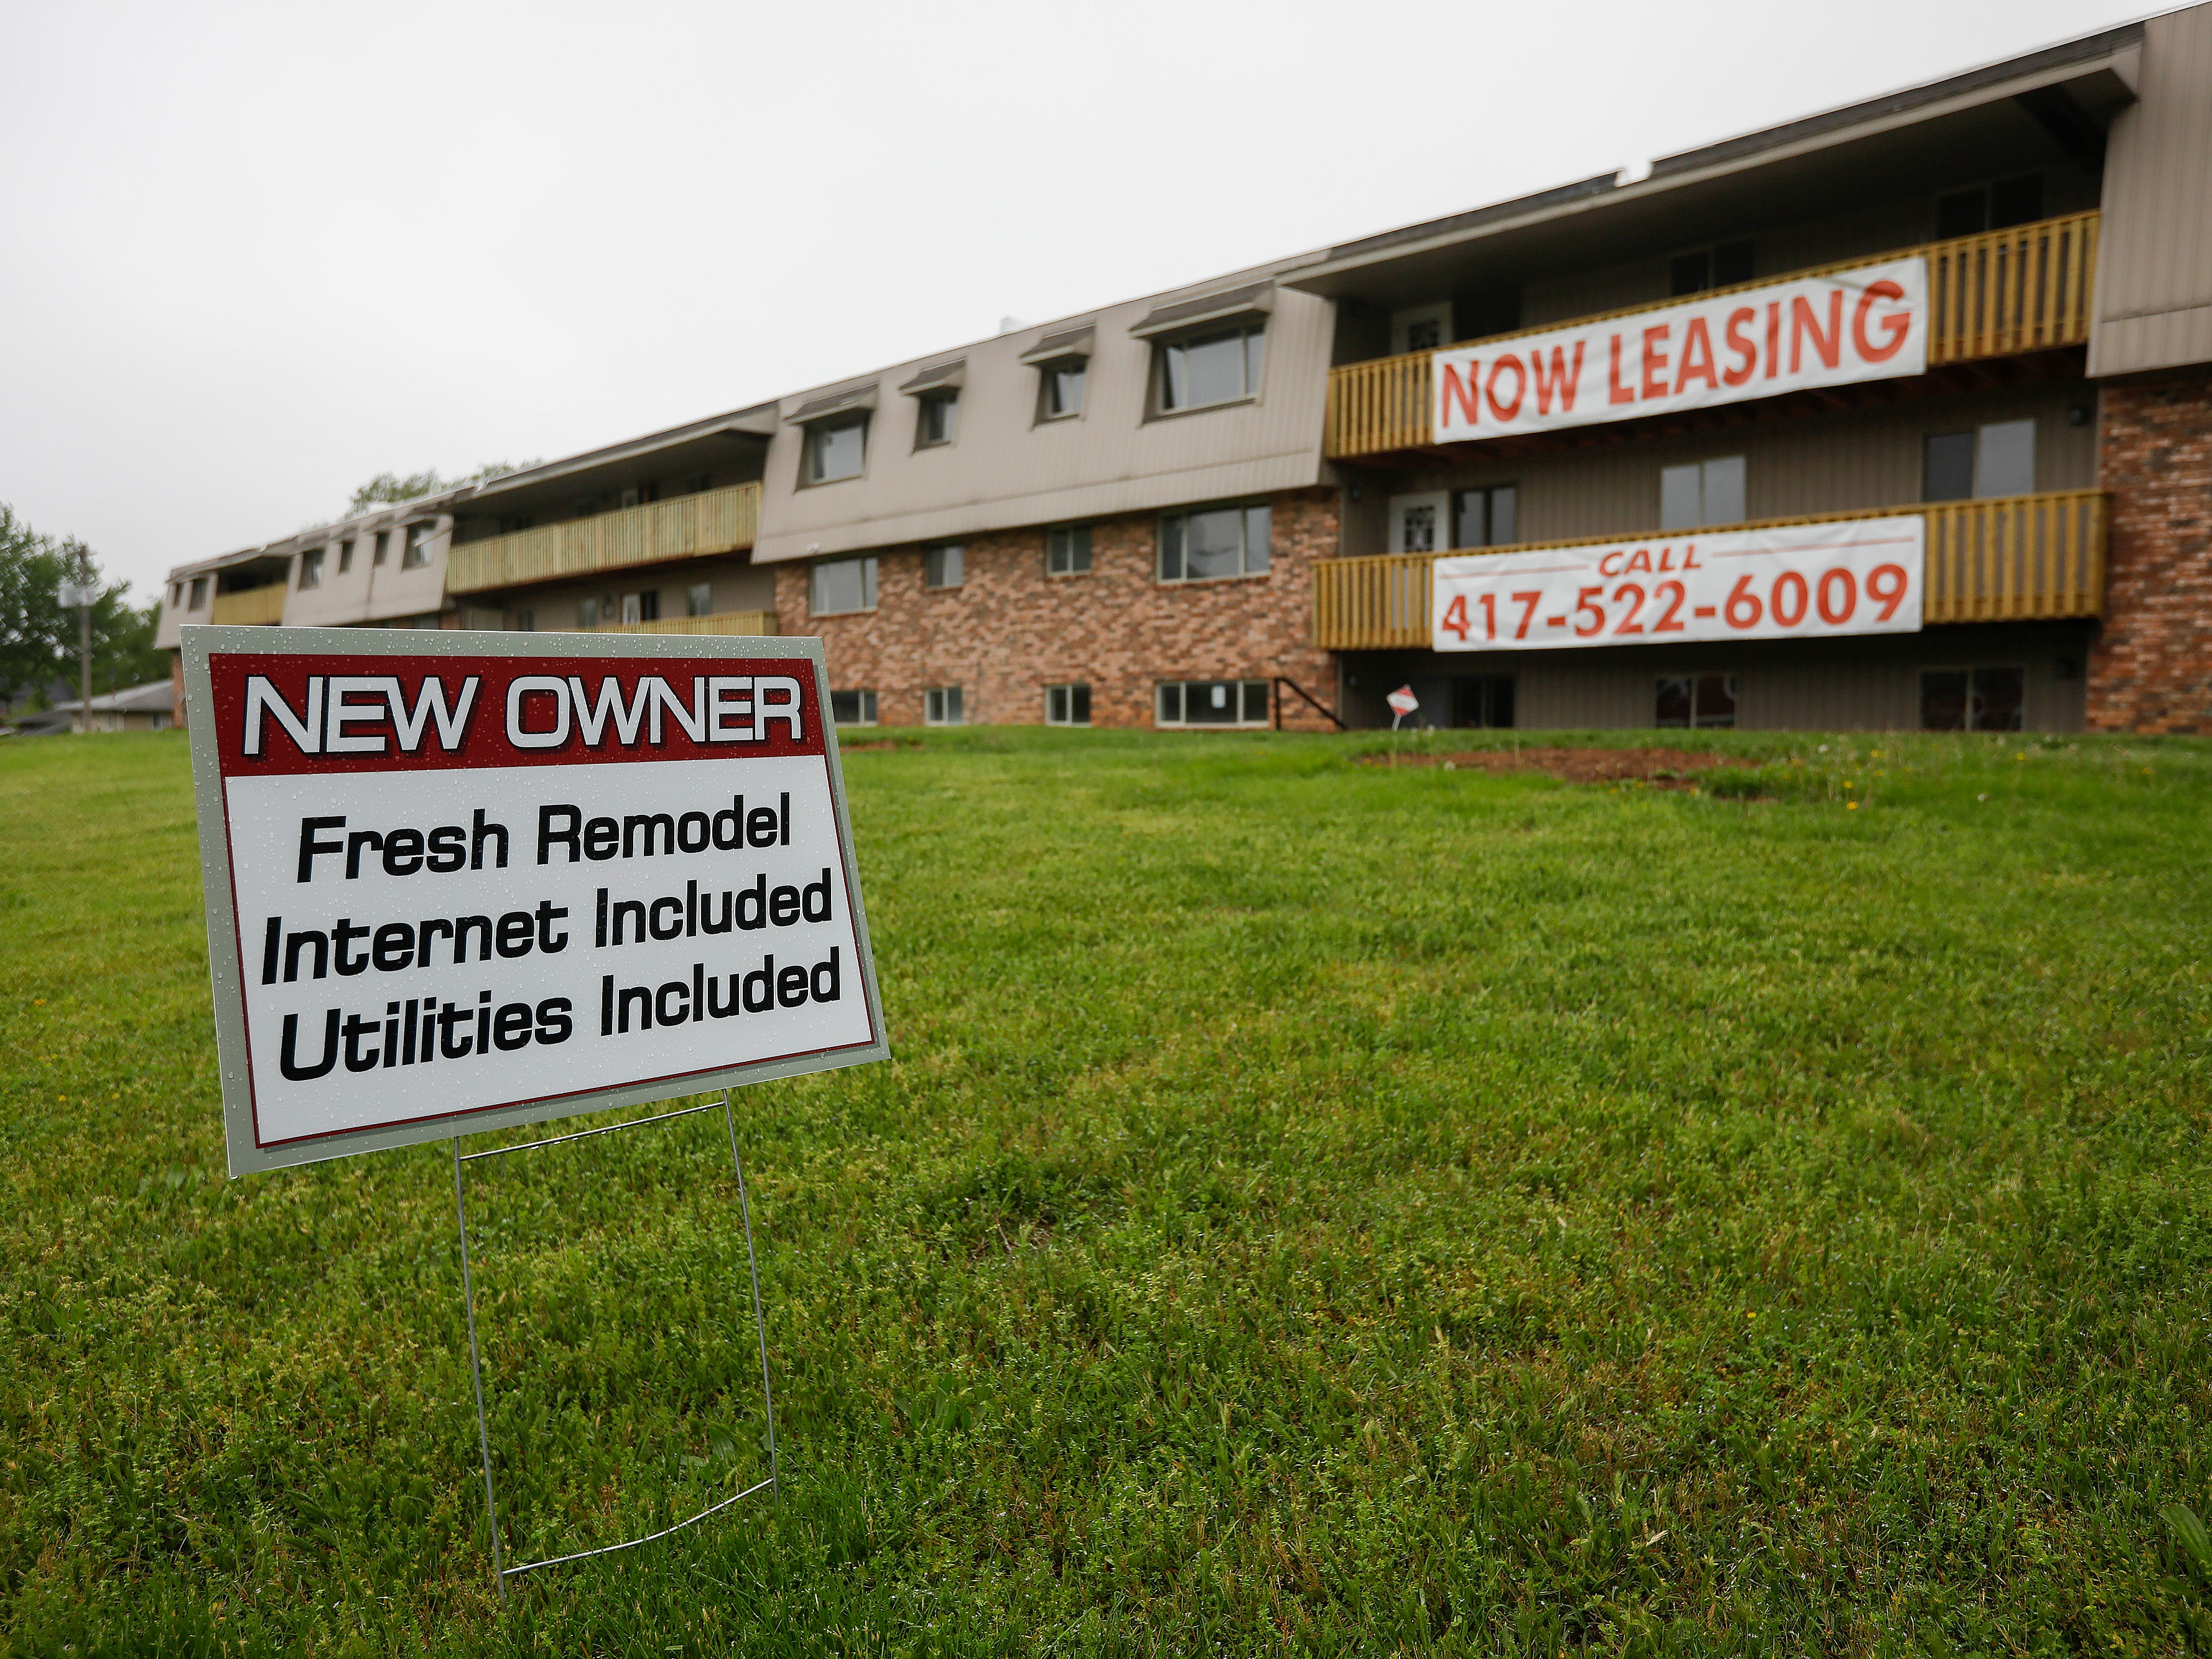 Adam Stacey, the new owner of the apartment building at 2107 E Cherry St., is in the process of major renovations at the former Chris Gatley property.